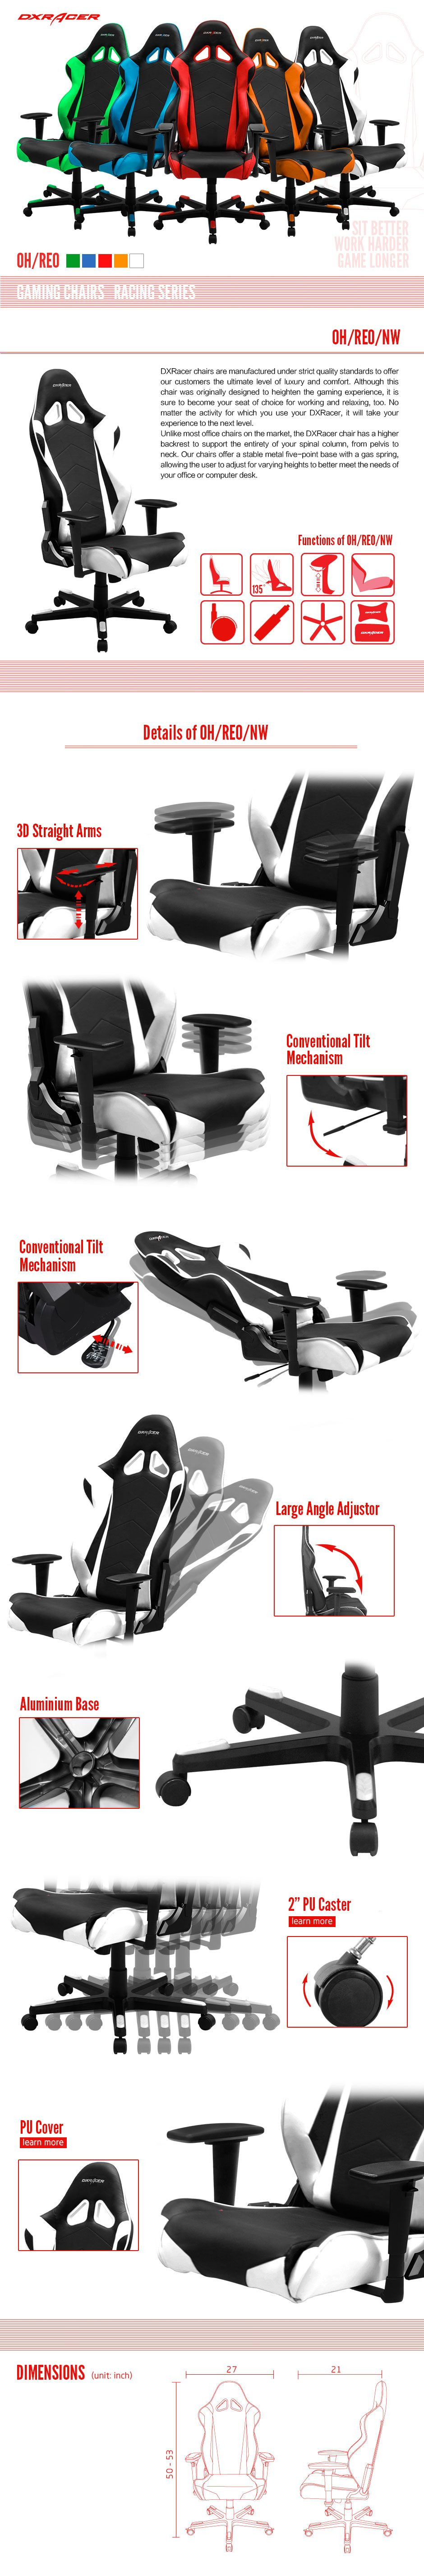 Racing Series Conventional PU Leather Gaming Chair RE0/NW